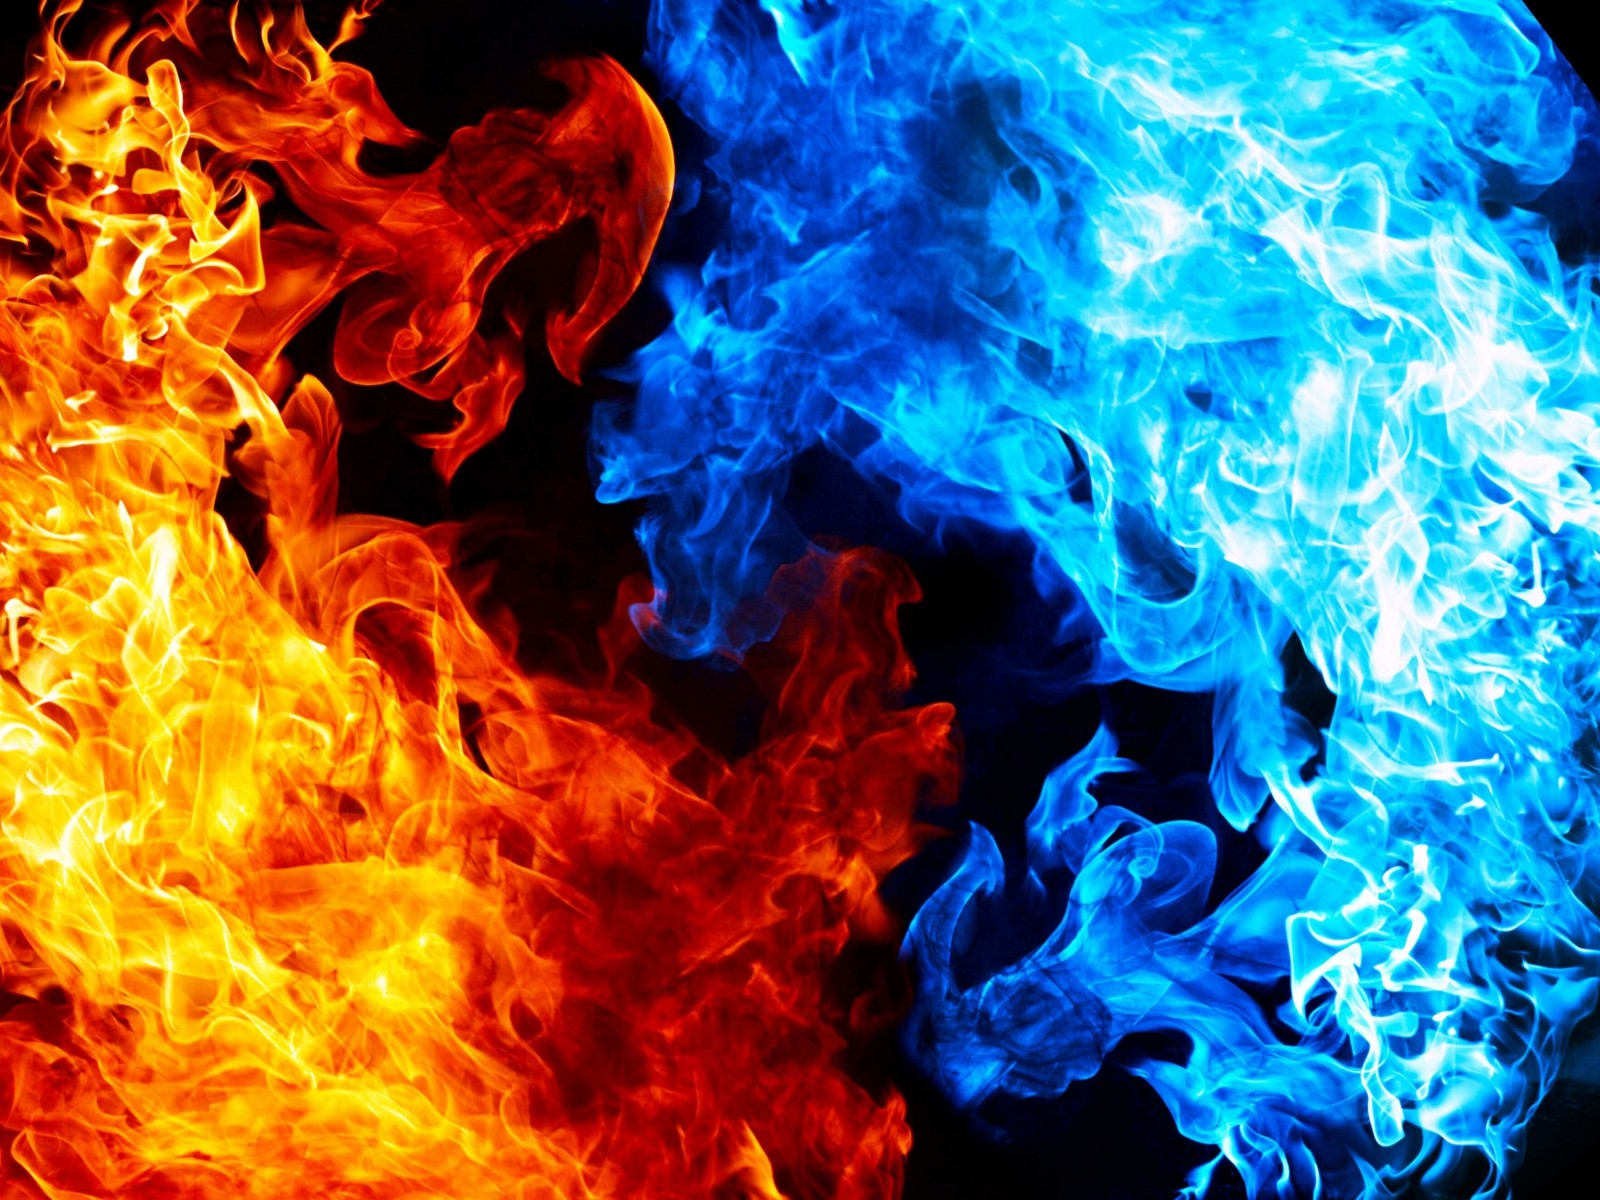 Blue And Red Fire Wallpaper for Desktop 1600x1200